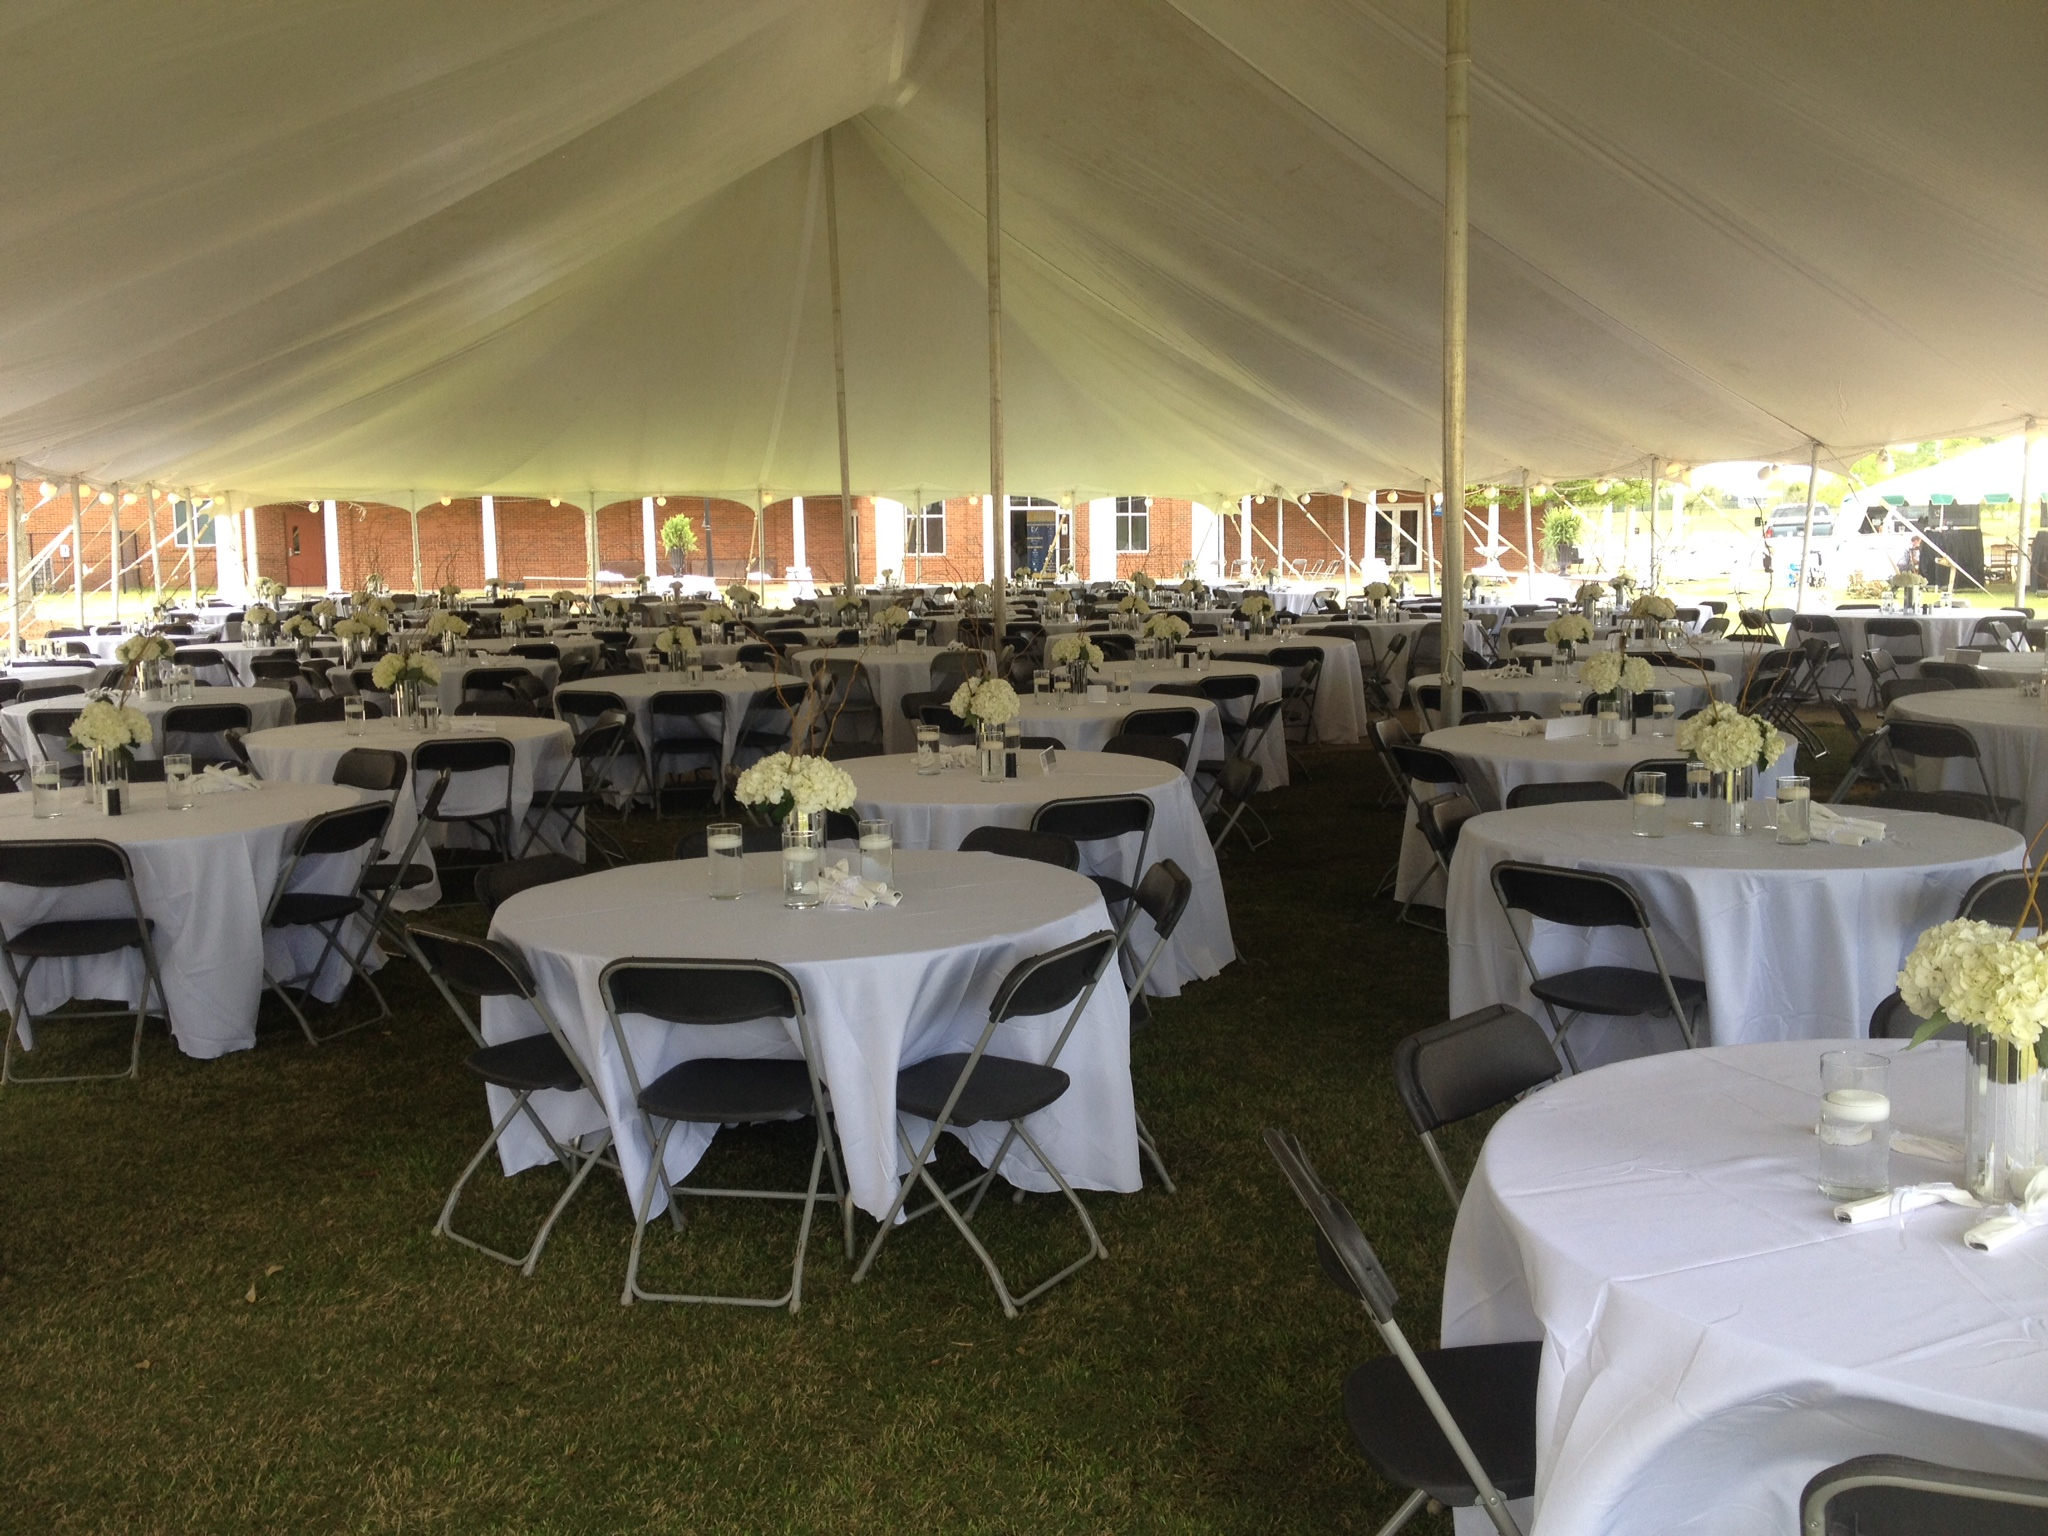 chair cover rentals montgomery al seating area with 4 chairs event arrow rents also check our tent planning guide to start your outdoor